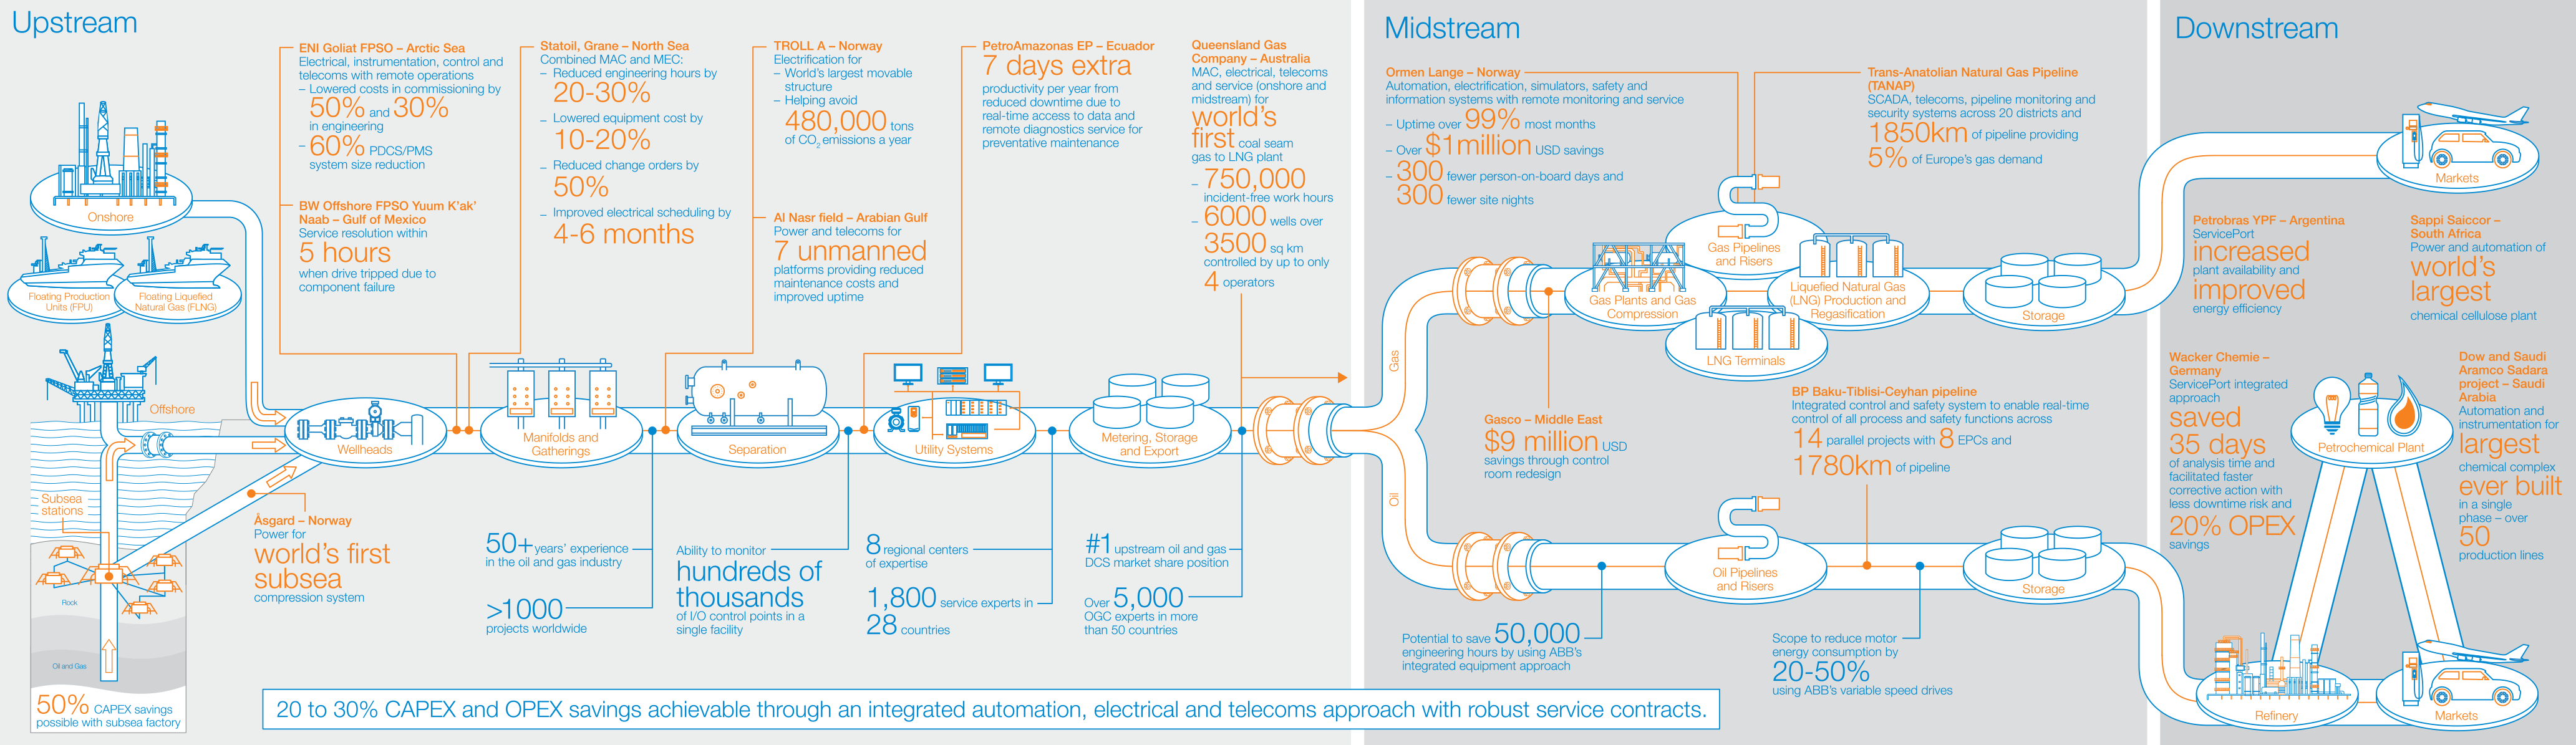 Abb Automation Solutions For Oil Gas And Petrochemicals Electric Meter Wiring Diagram Provides A Proven Track Record Of Reducing Cost Minimizing Risk Keeping Customers On Schedule Across The Entire Hydrocarbon Value Chain